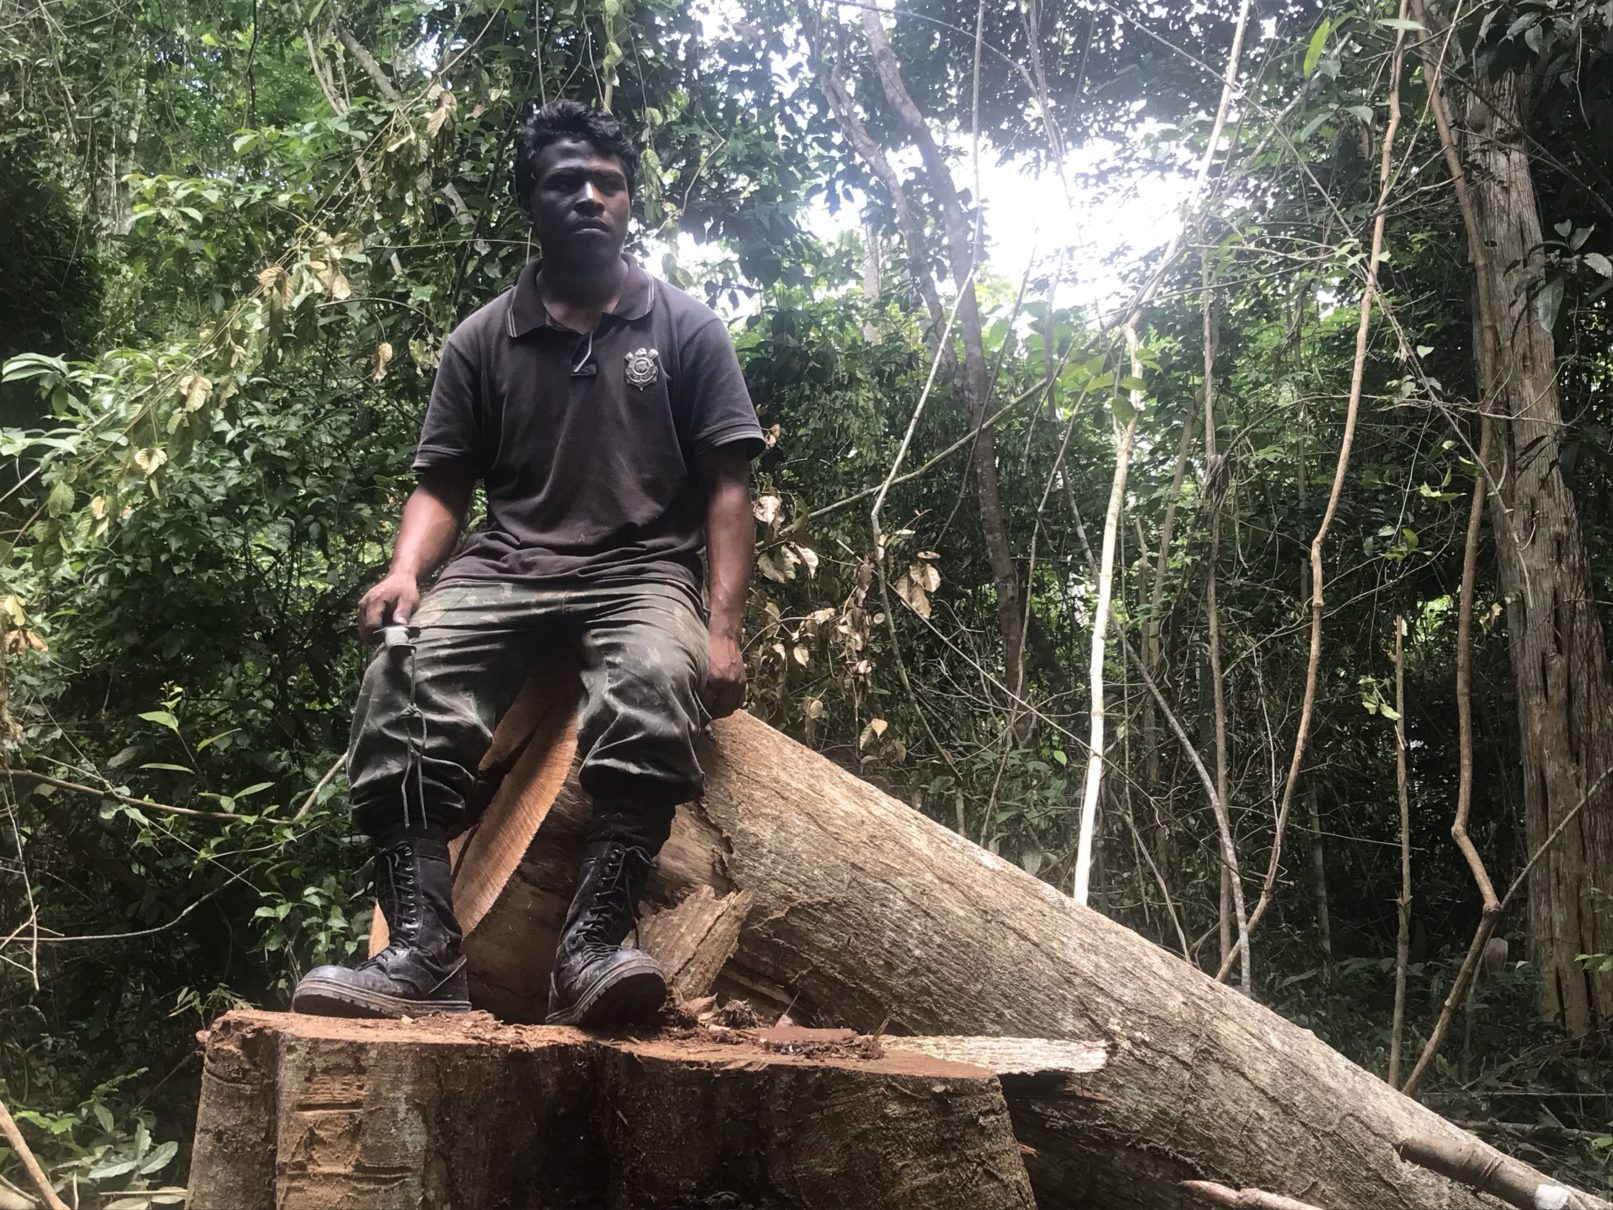 """Indigenous Guajajara leader Paulo Paulino Guajajara was shot dead in an ambush by loggers in the Amazon. He was one of the """"Guardians of the Forest,"""" a group of Guajajara indigenous people that risks their lives fighting illegal logging in the Araribóia indigenous reserve. He posed for this picture on Jan 31, 2019. Image by Karla Mendes/Mongabay"""